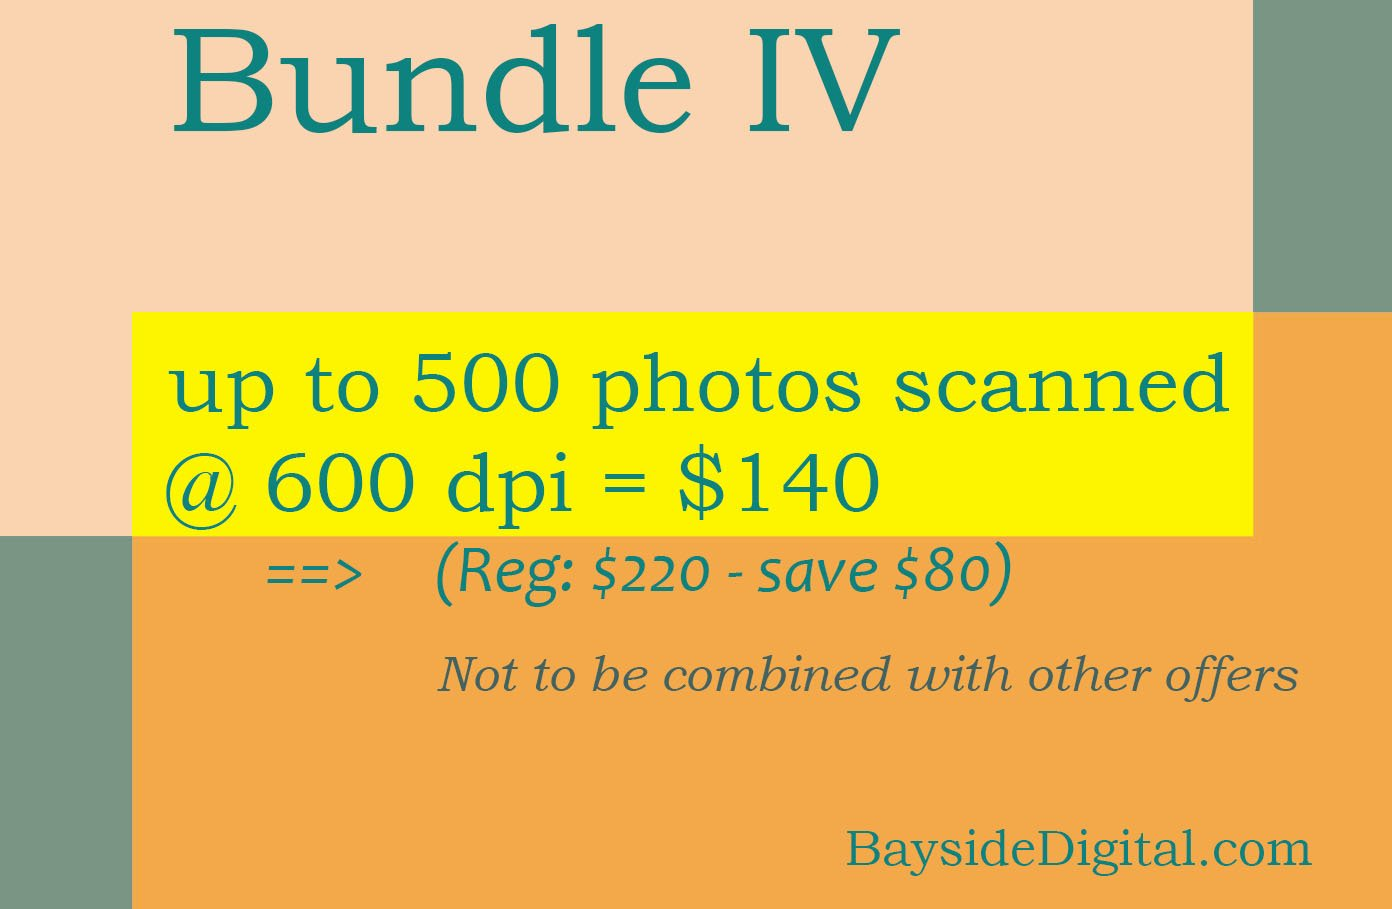 Scanning digitizing photos up to 500 scanned at 600 dpi SPECIAL SALE